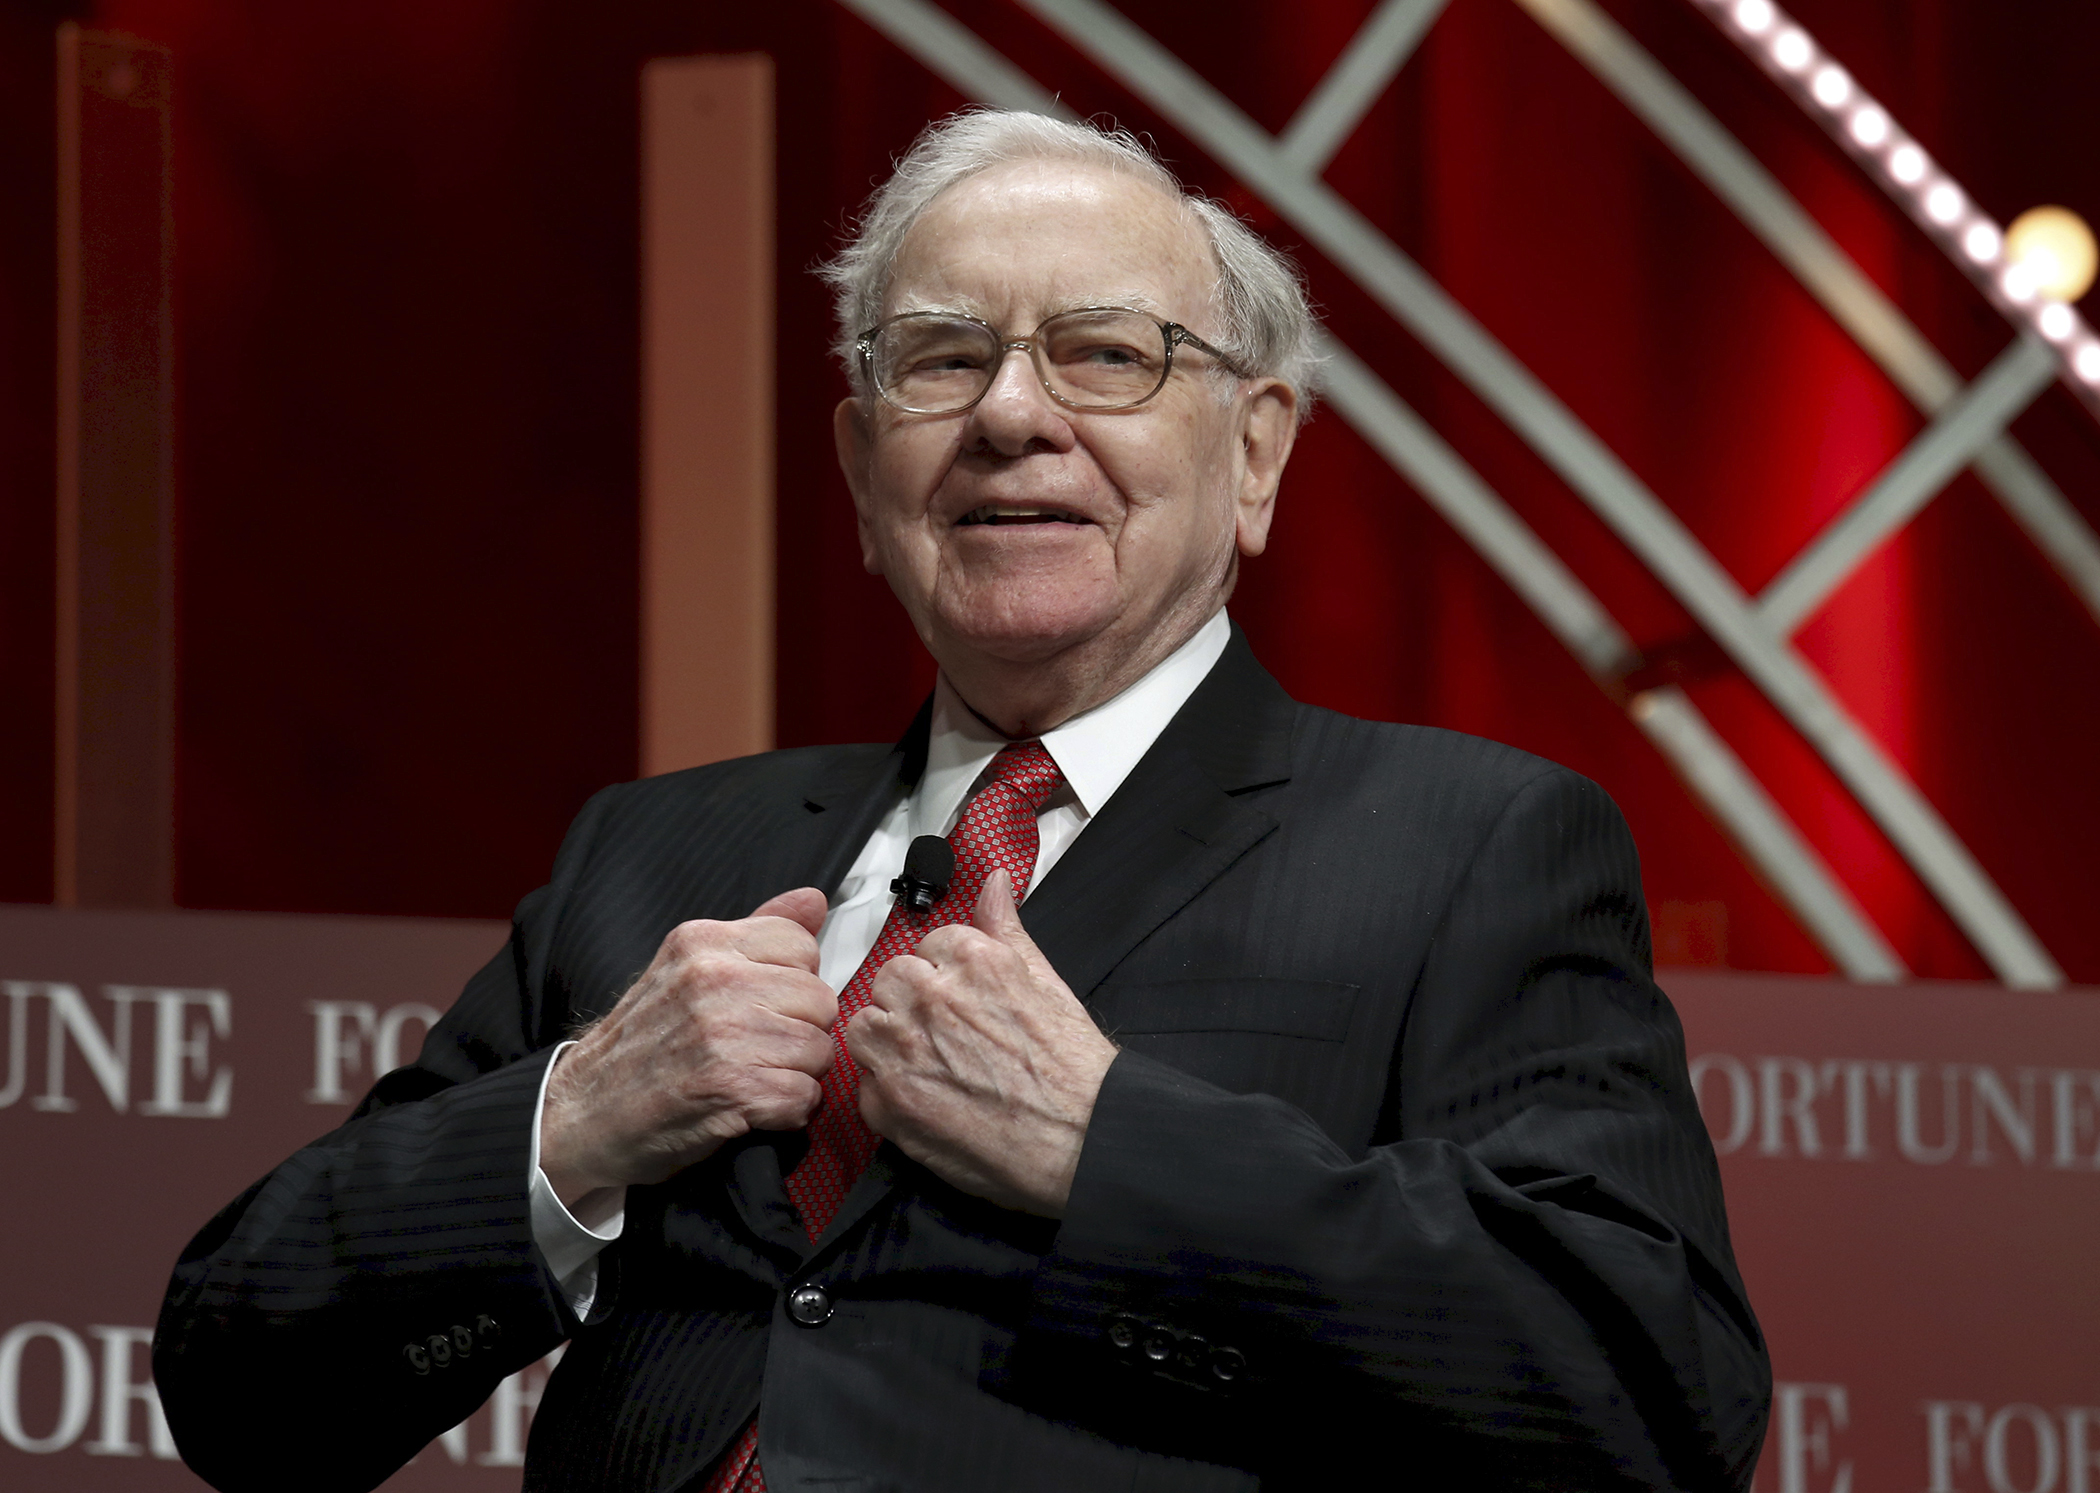 Warren Buffett, chairman and CEO of Berkshire Hathaway, takes his seat to speak at the Fortune's Most Powerful Women's Summit in Washington October 13, 2015.